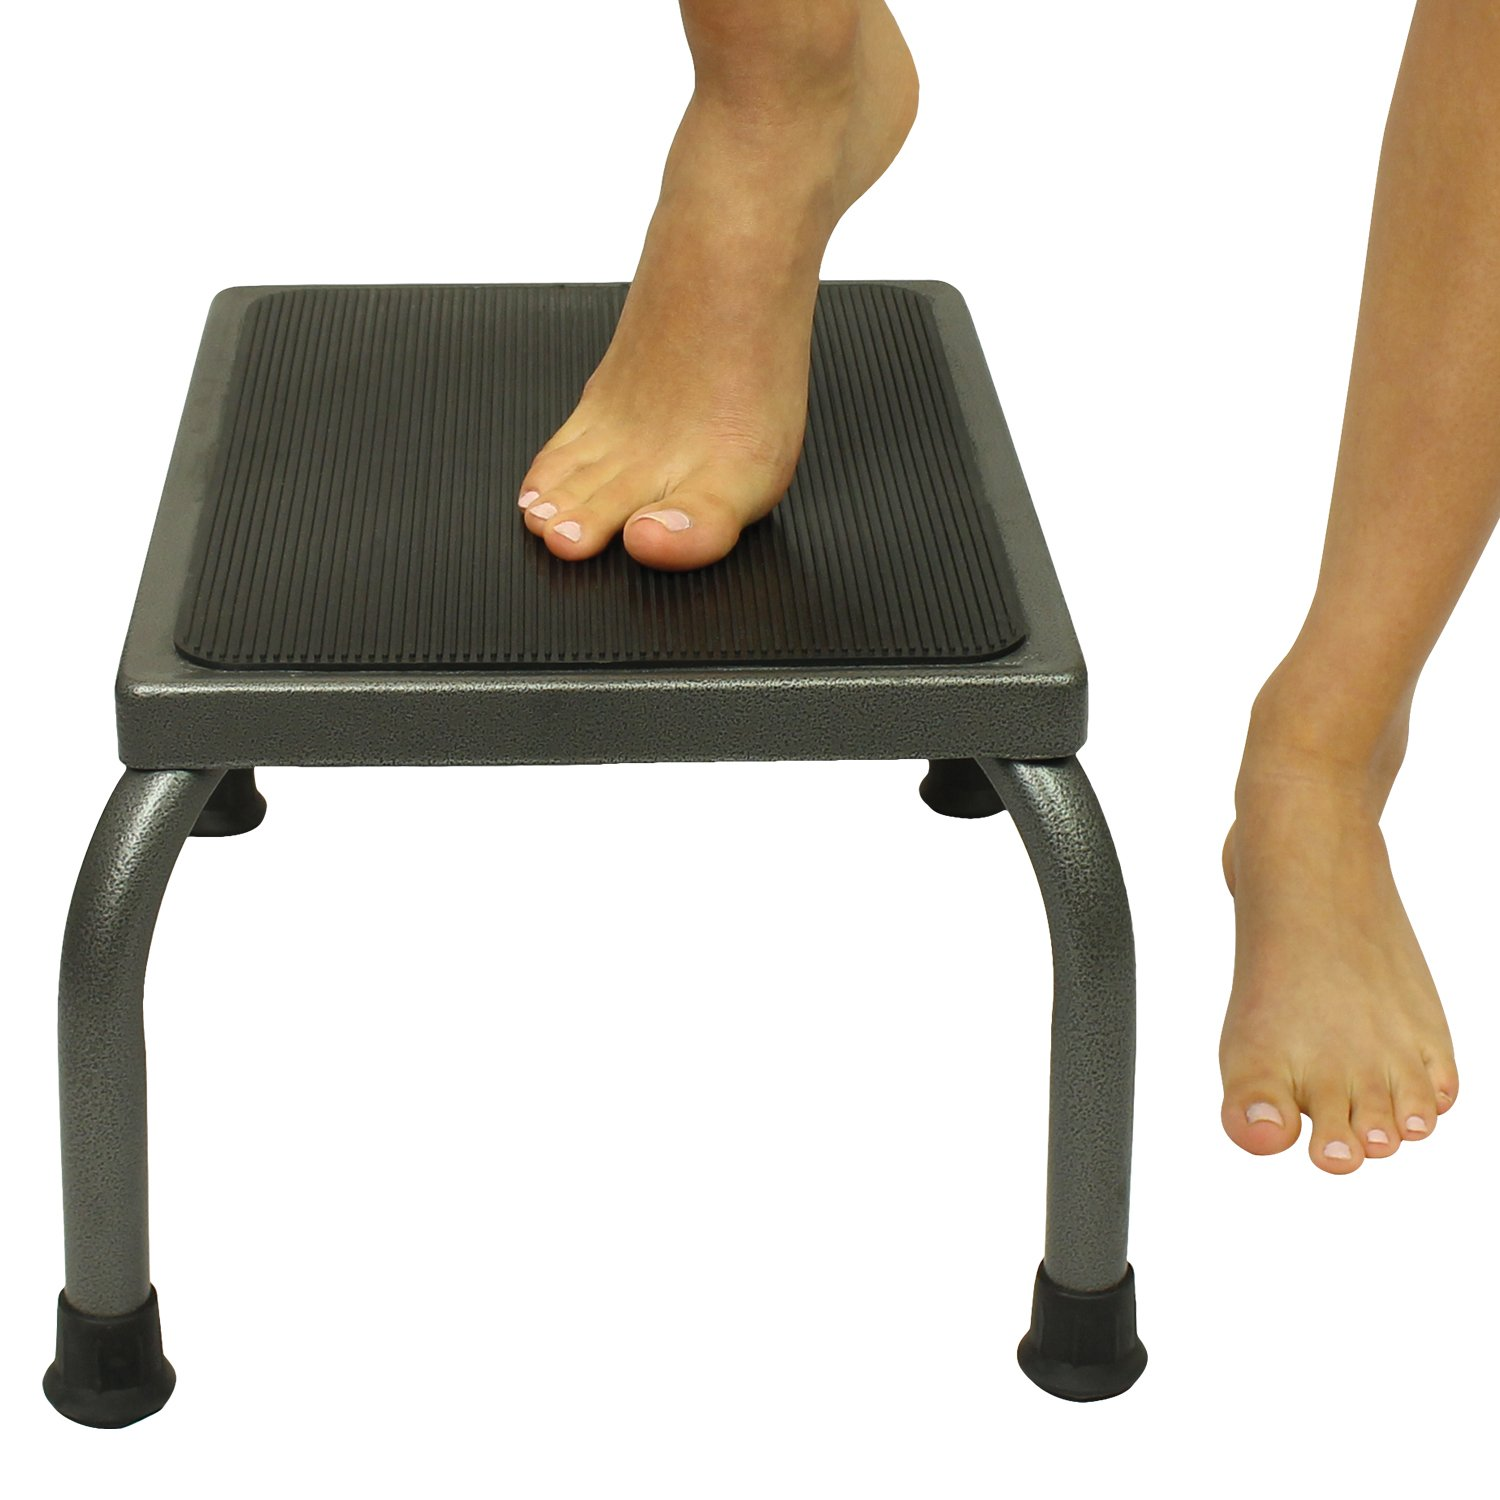 Outstanding Cheap Step Stool Rubber Feet Find Step Stool Rubber Feet Inzonedesignstudio Interior Chair Design Inzonedesignstudiocom